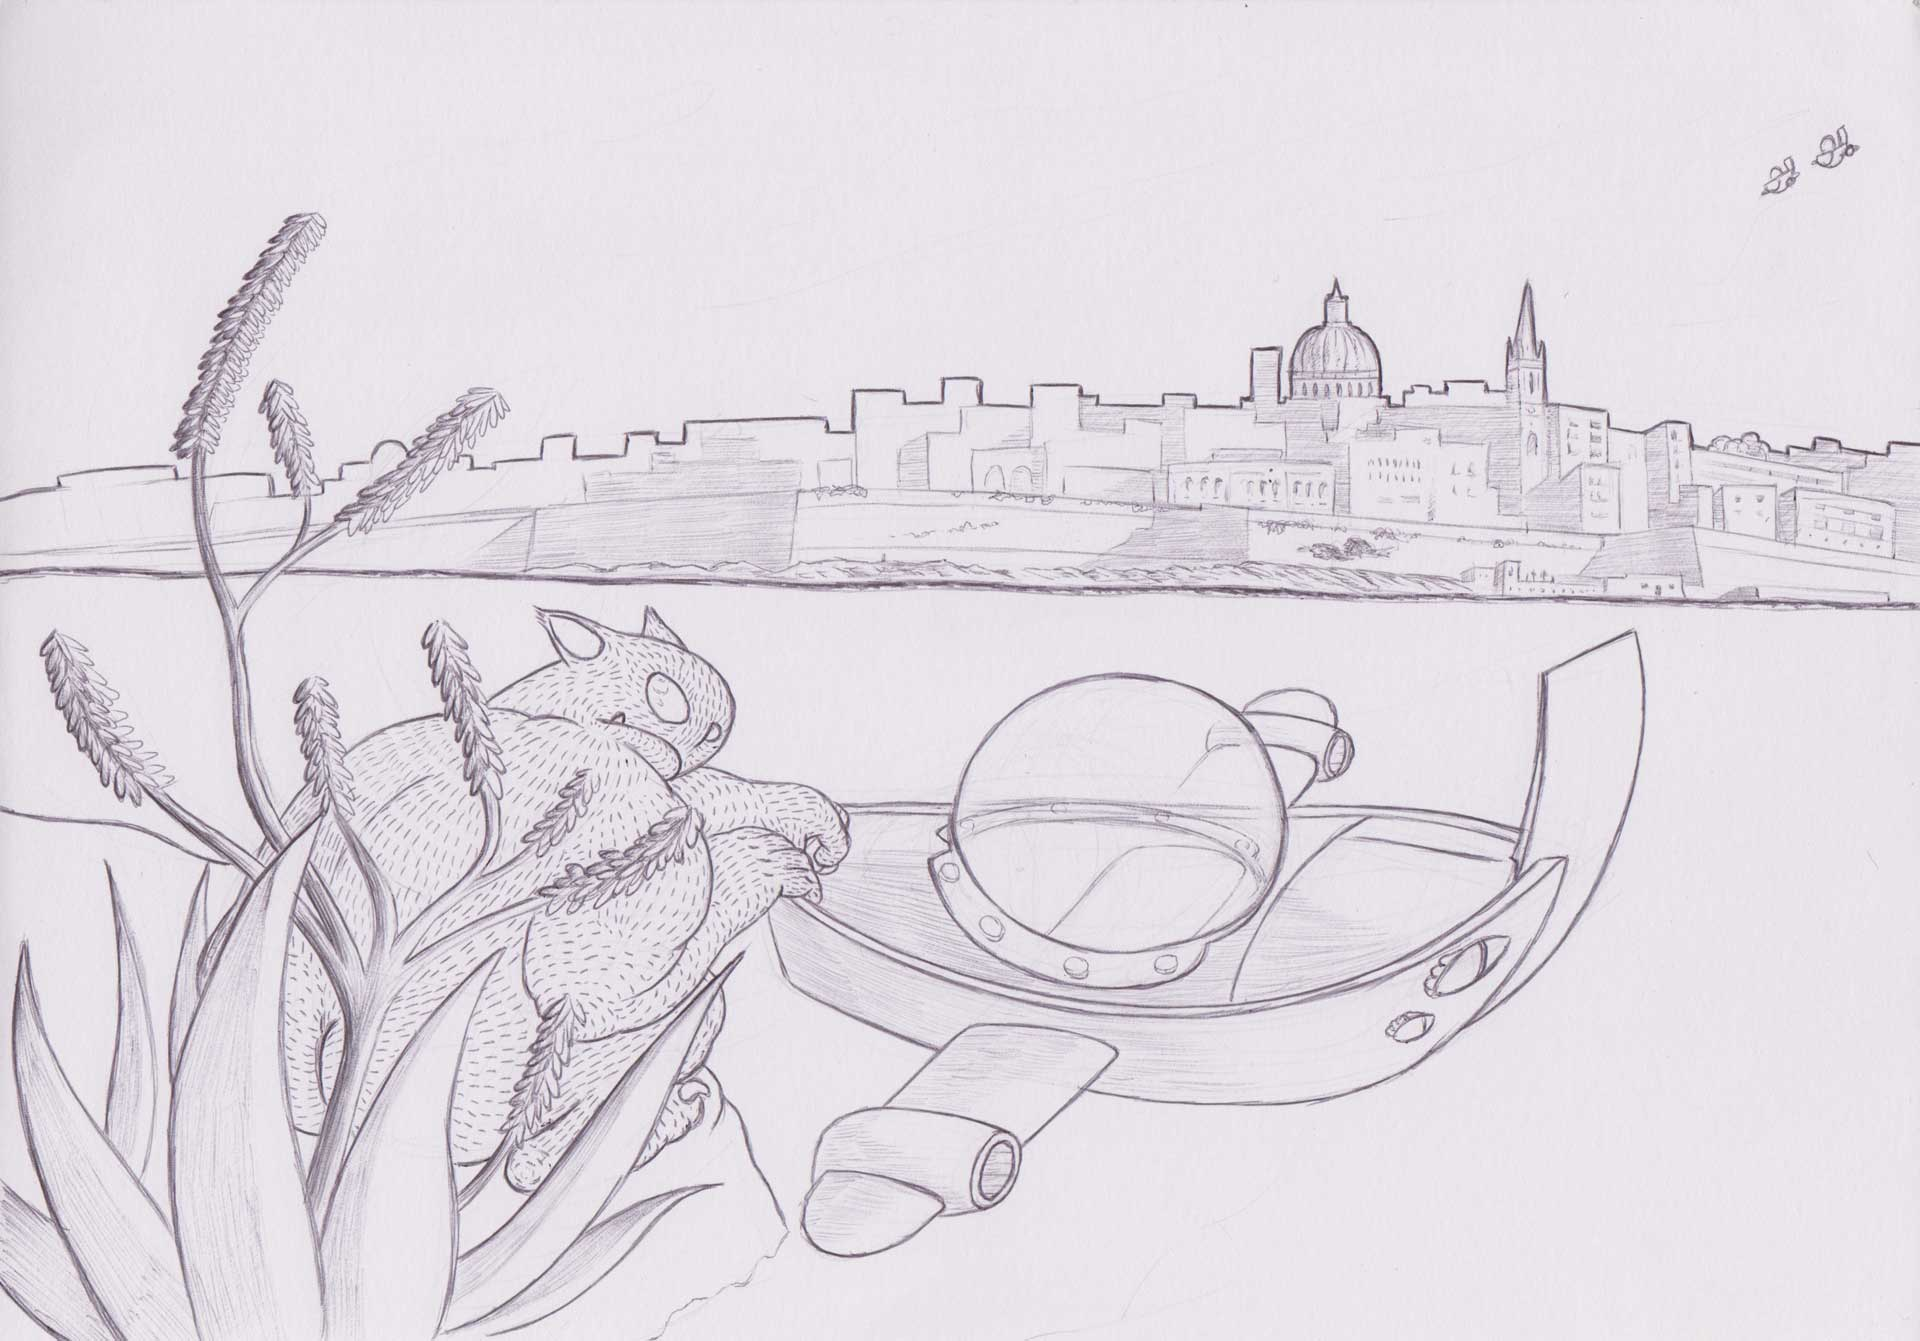 Alien looking at Valletta, Mixed media on paper by Alessandro Bruno